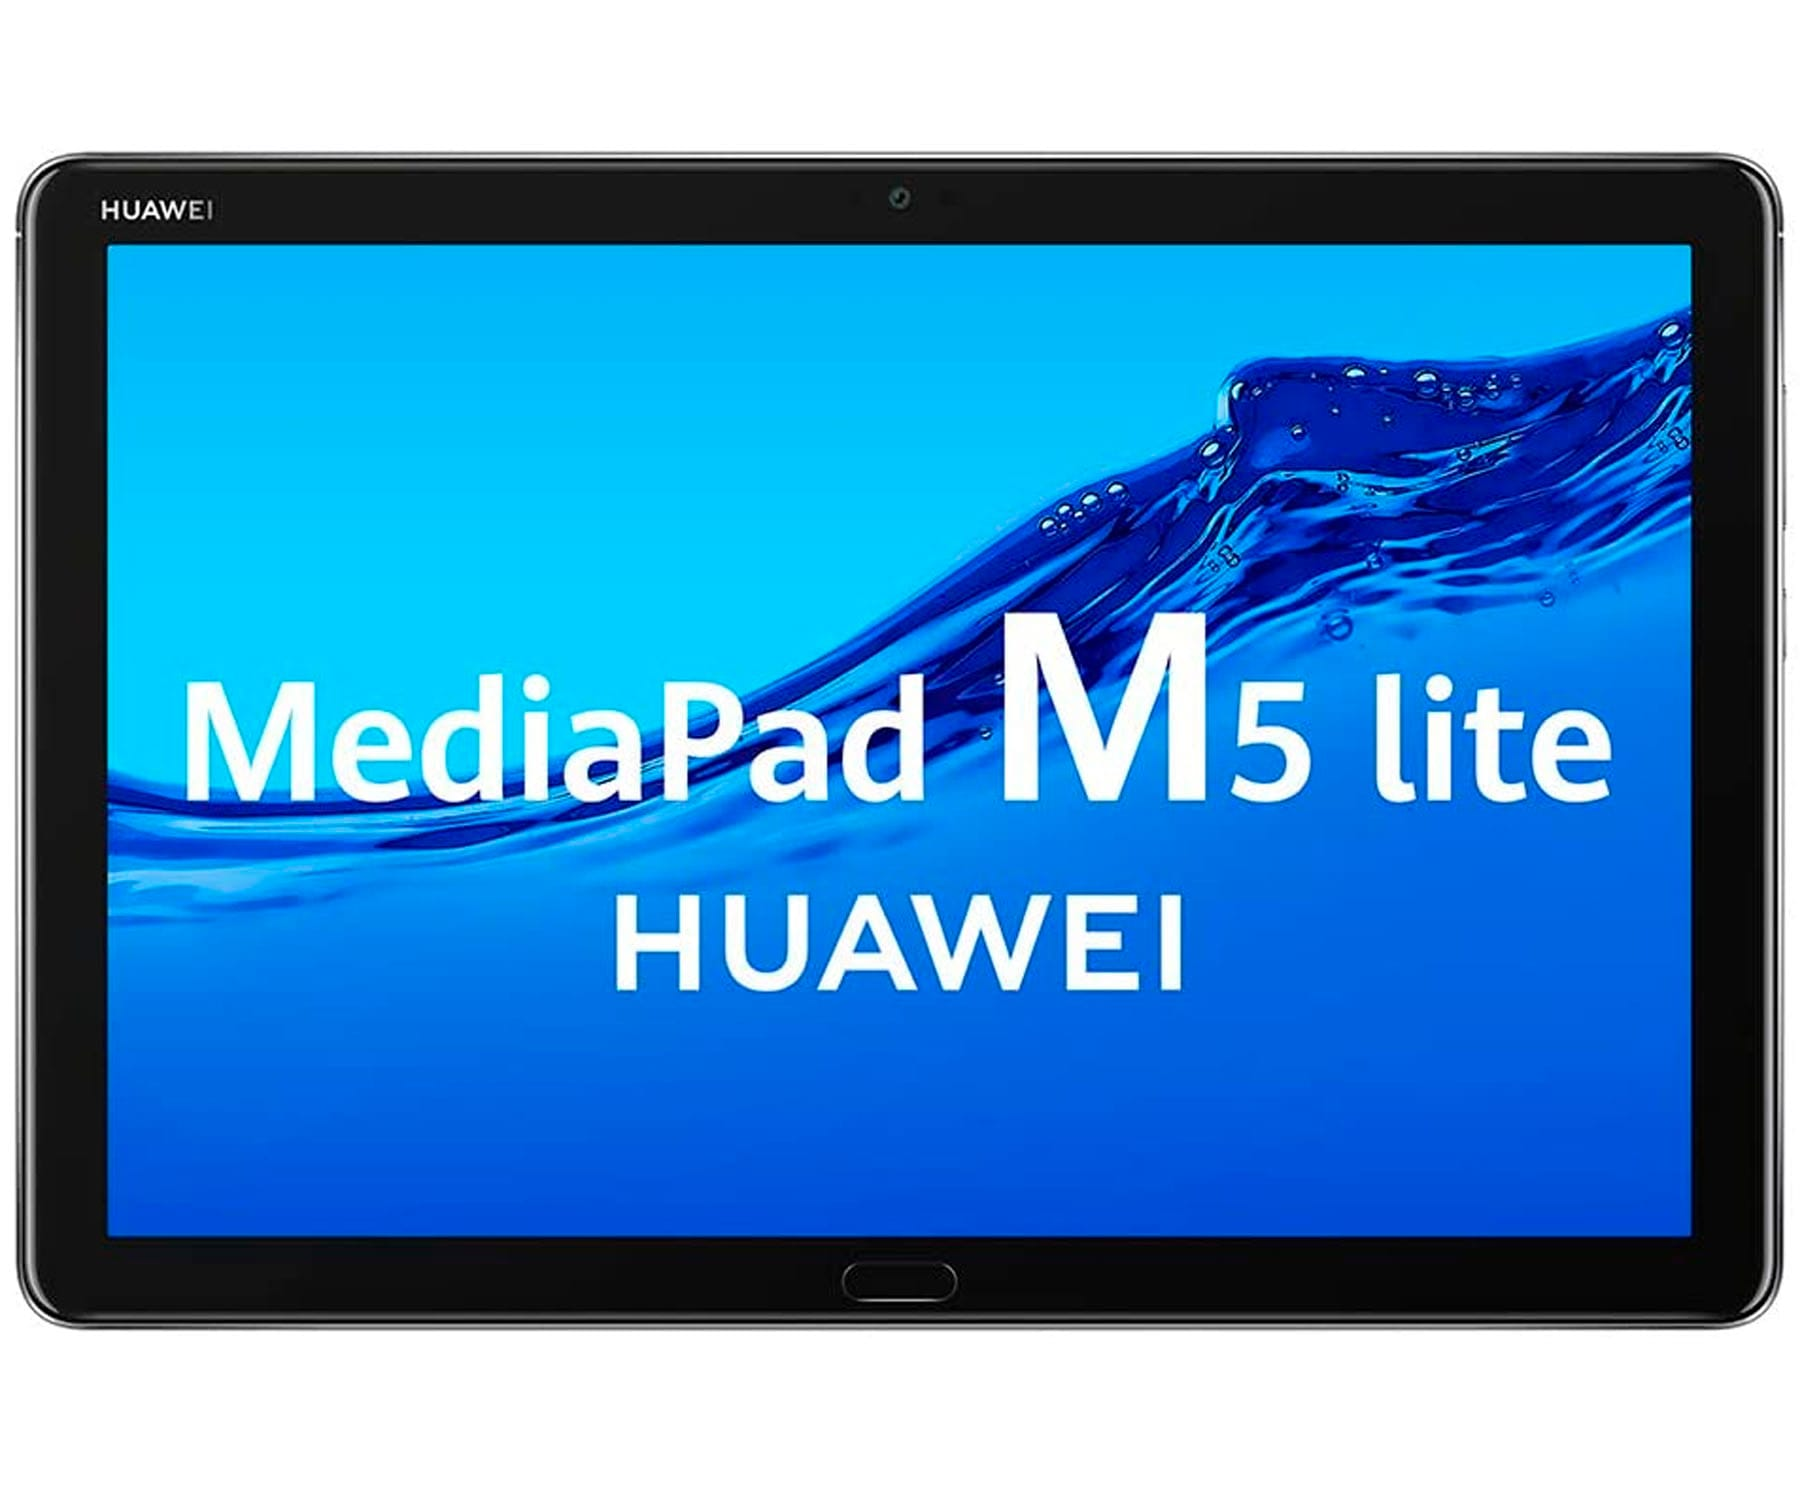 HUAWEI MEDIAPAD M5 LITE GRIS ESPACIAL TABLET WIFI 10.1'' IPS FHD+/8CORE/64GB/4GB RAM/8MP/8MP